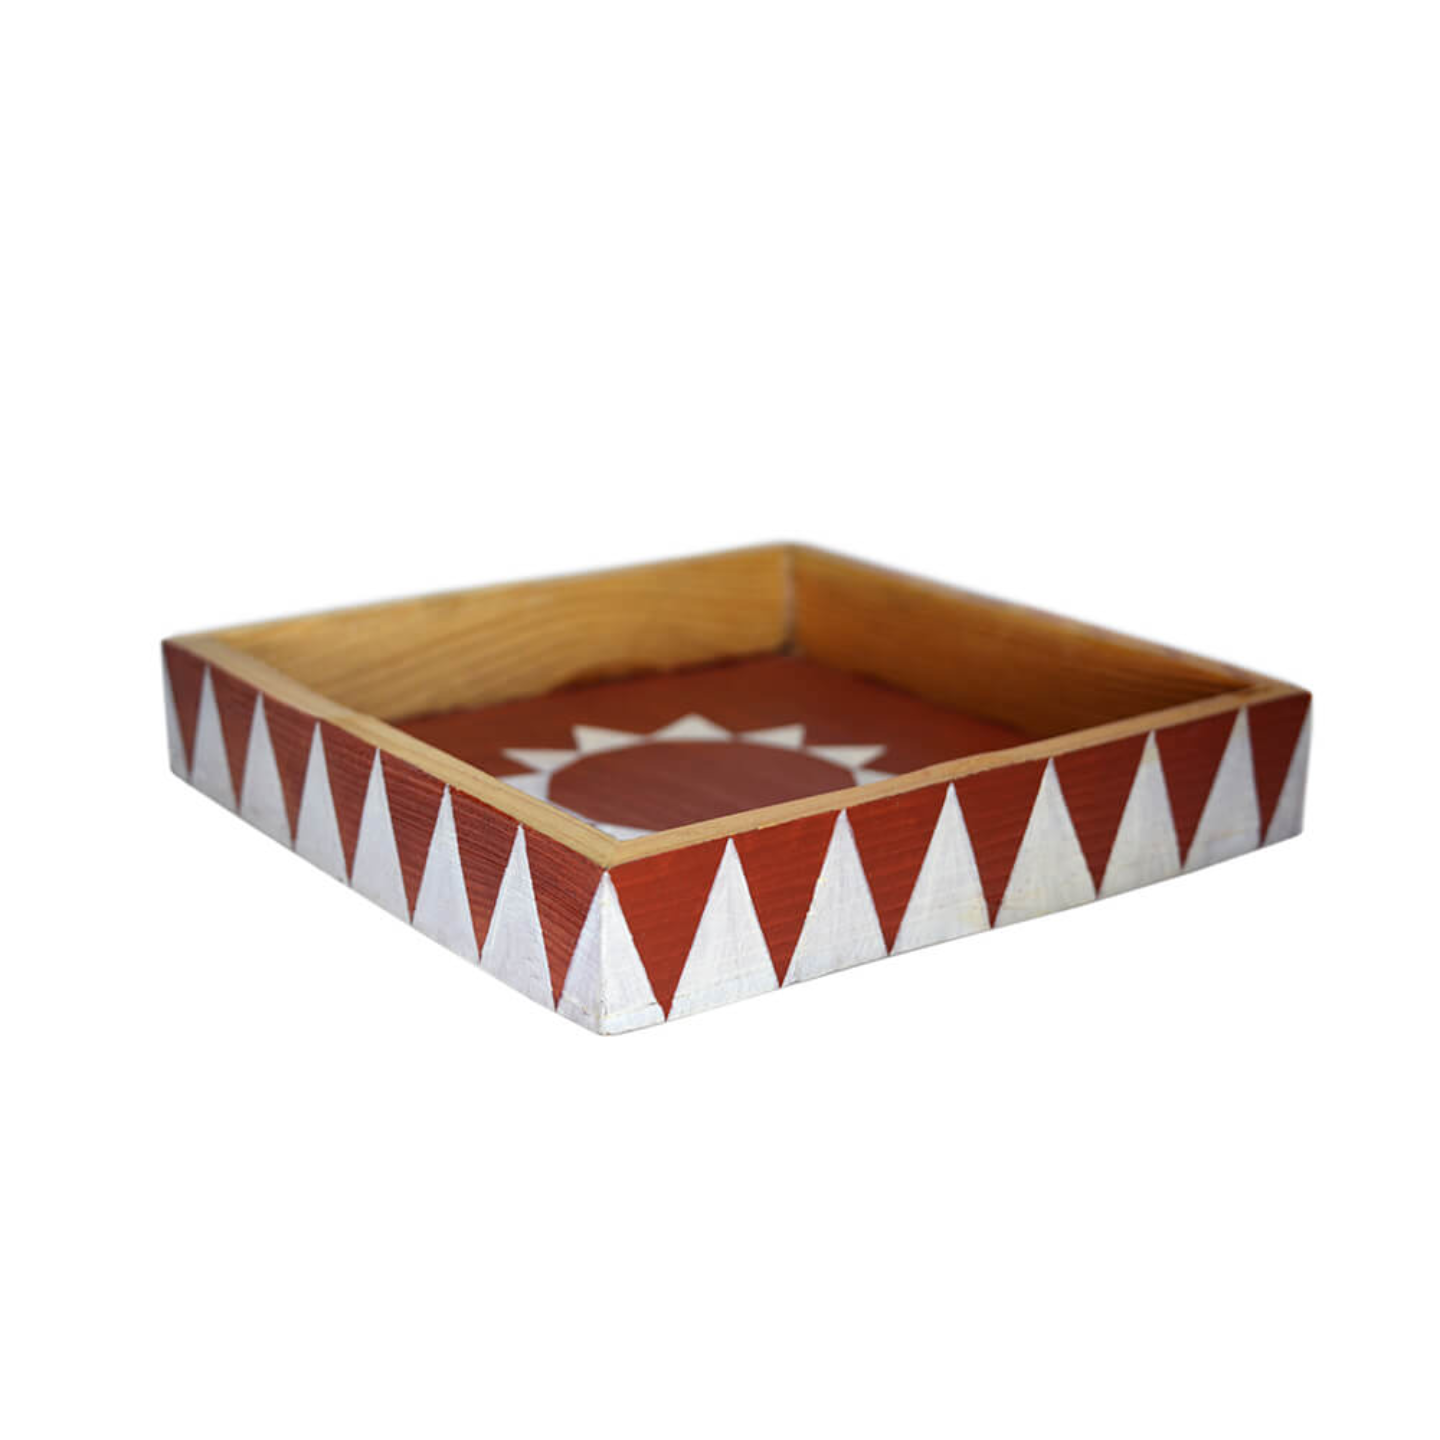 Square shaped wooden tray with triangular shaped handmade design